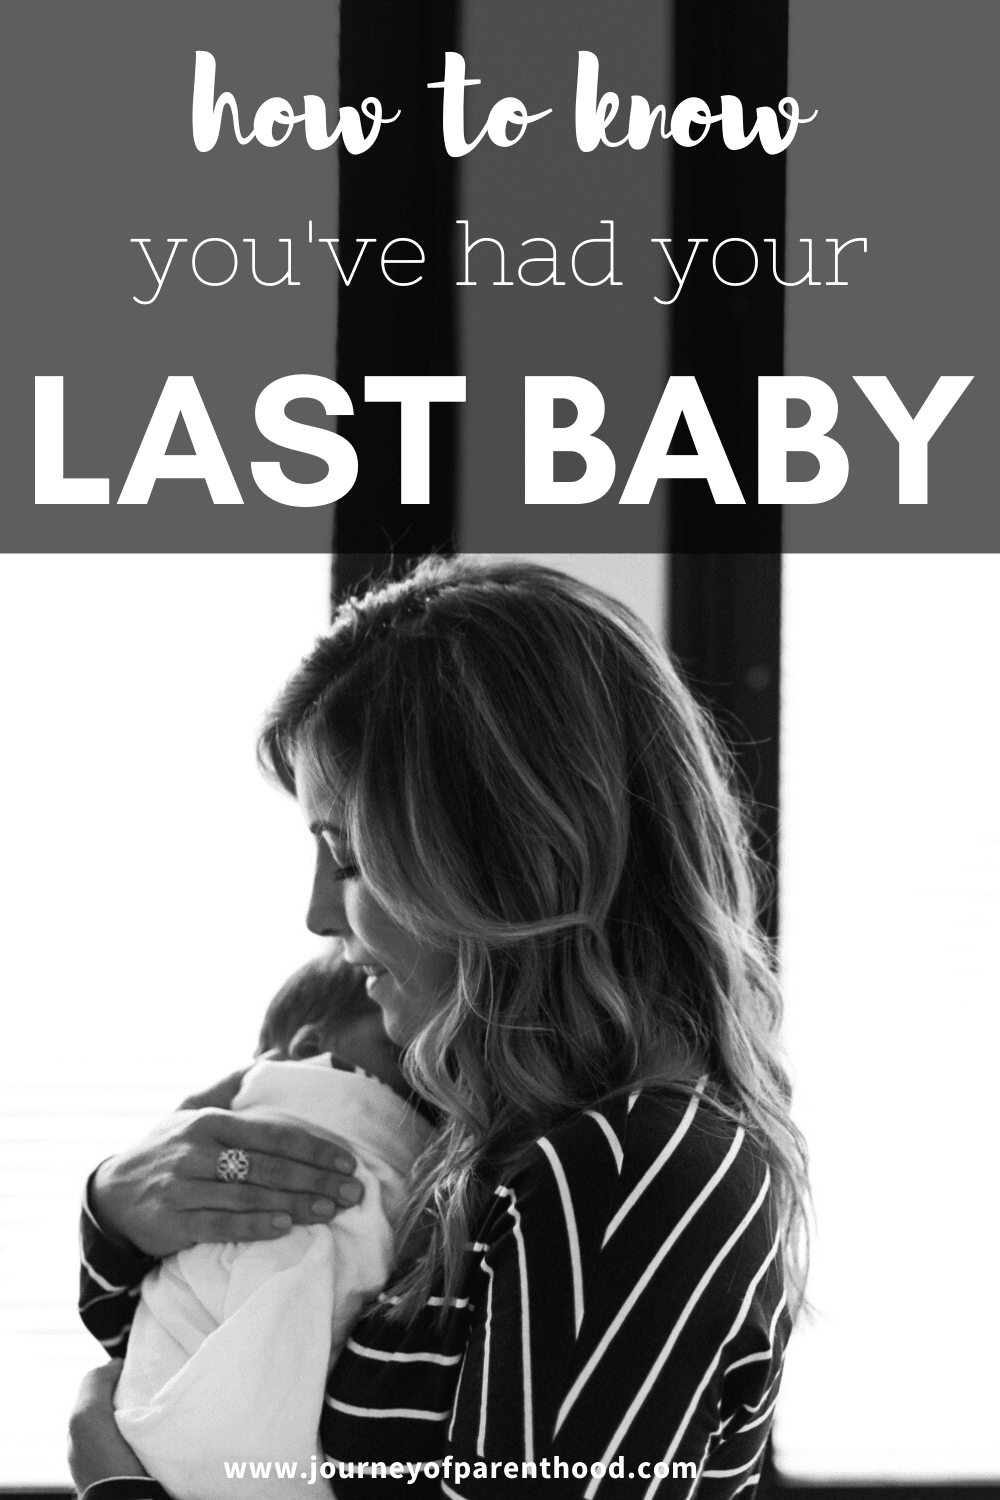 how to know you've had your last baby.